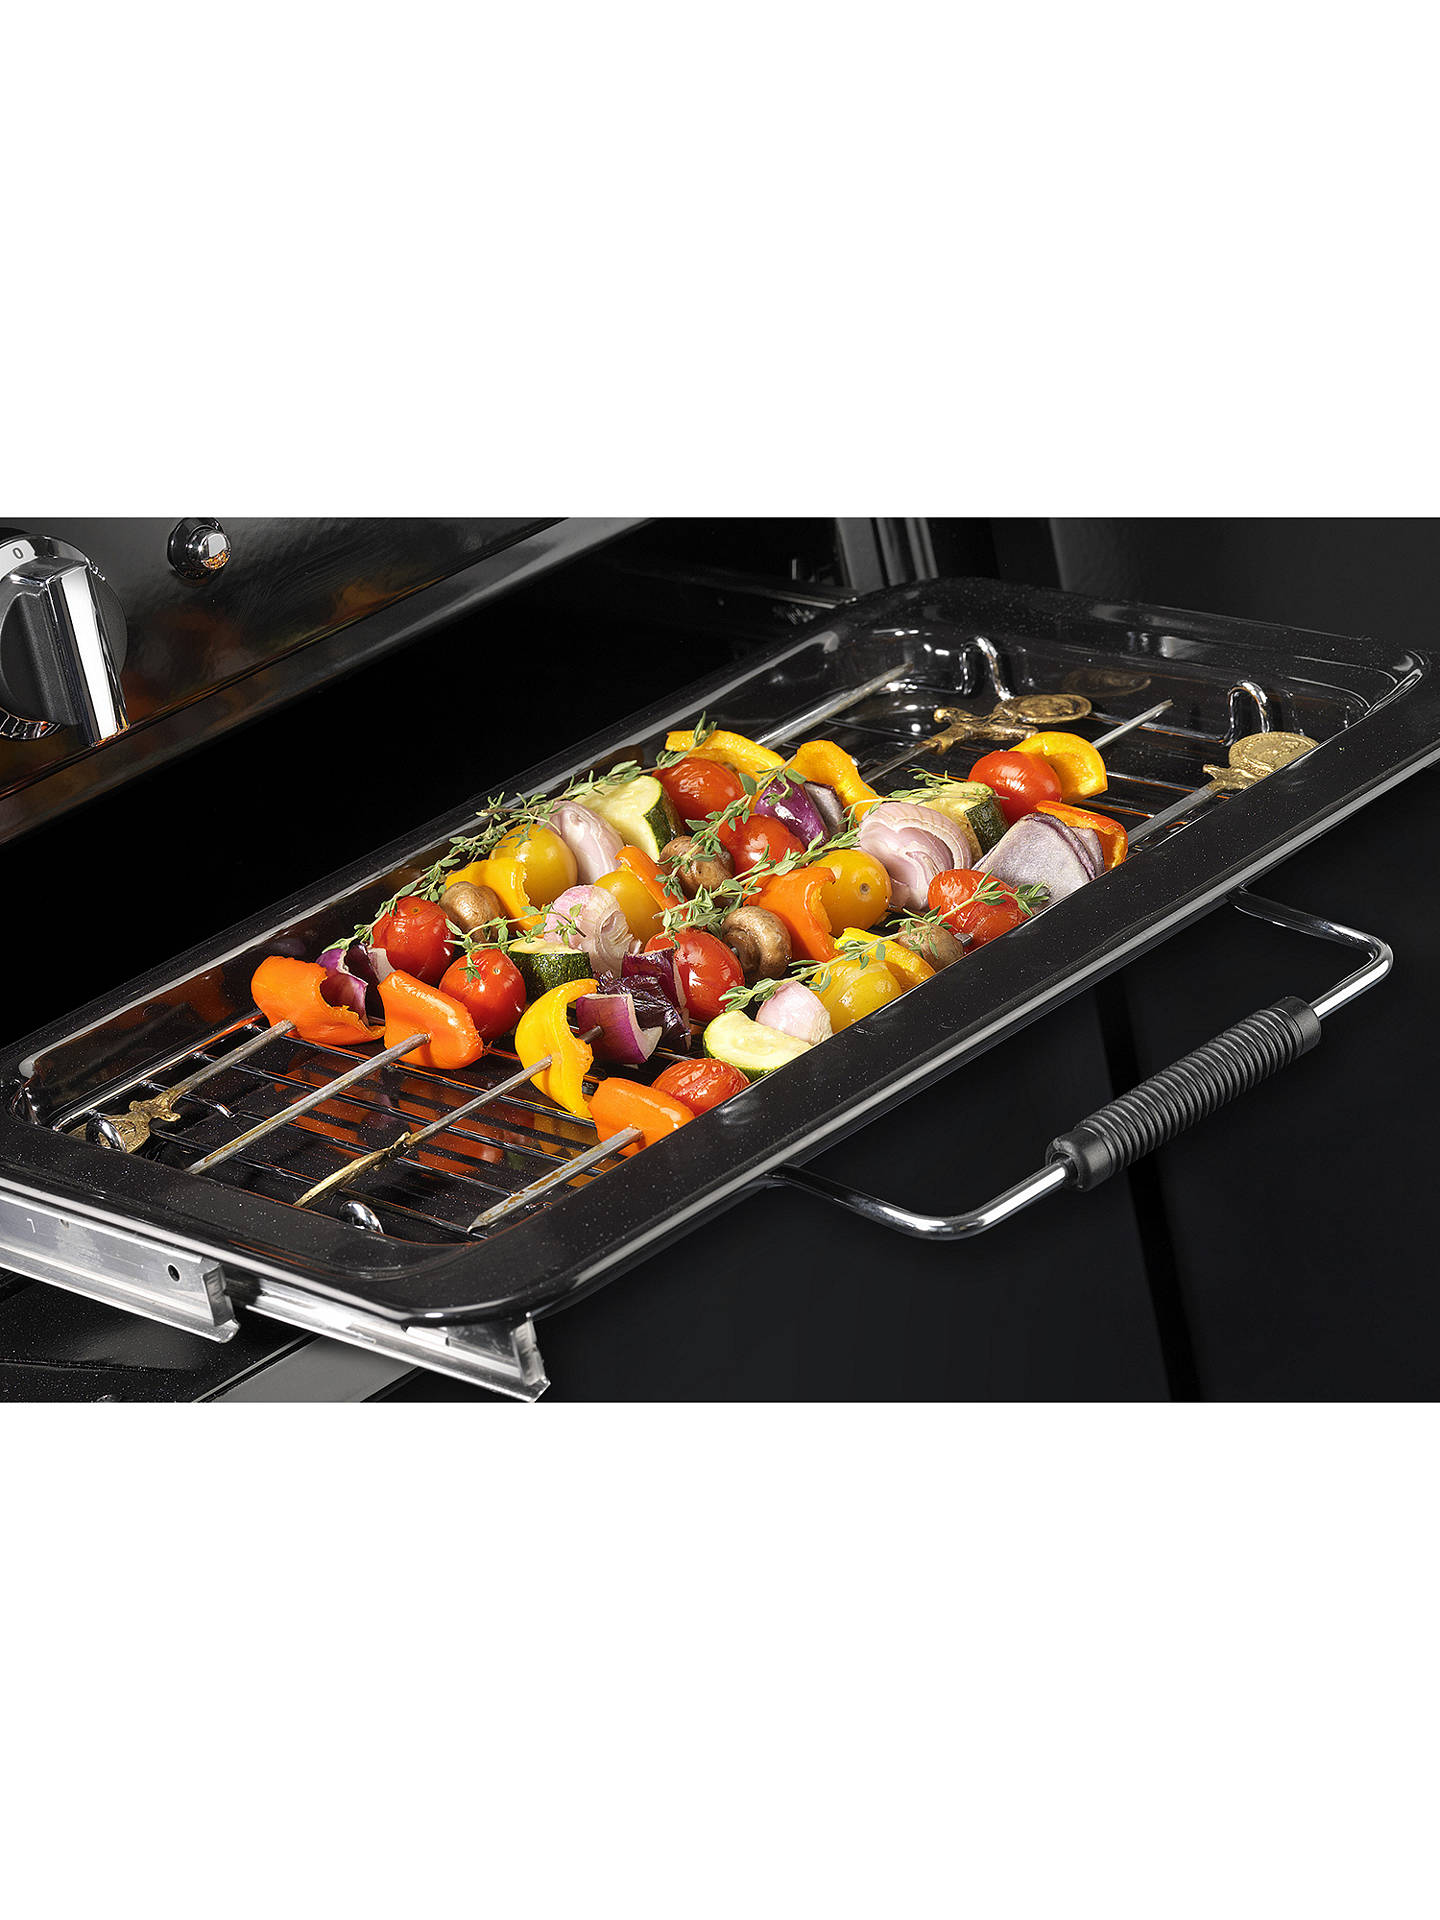 BuyRangemaster Leckford LCK110DFFBL/C Dual Fuel Range Cooker, Black/Chrome Online at johnlewis.com